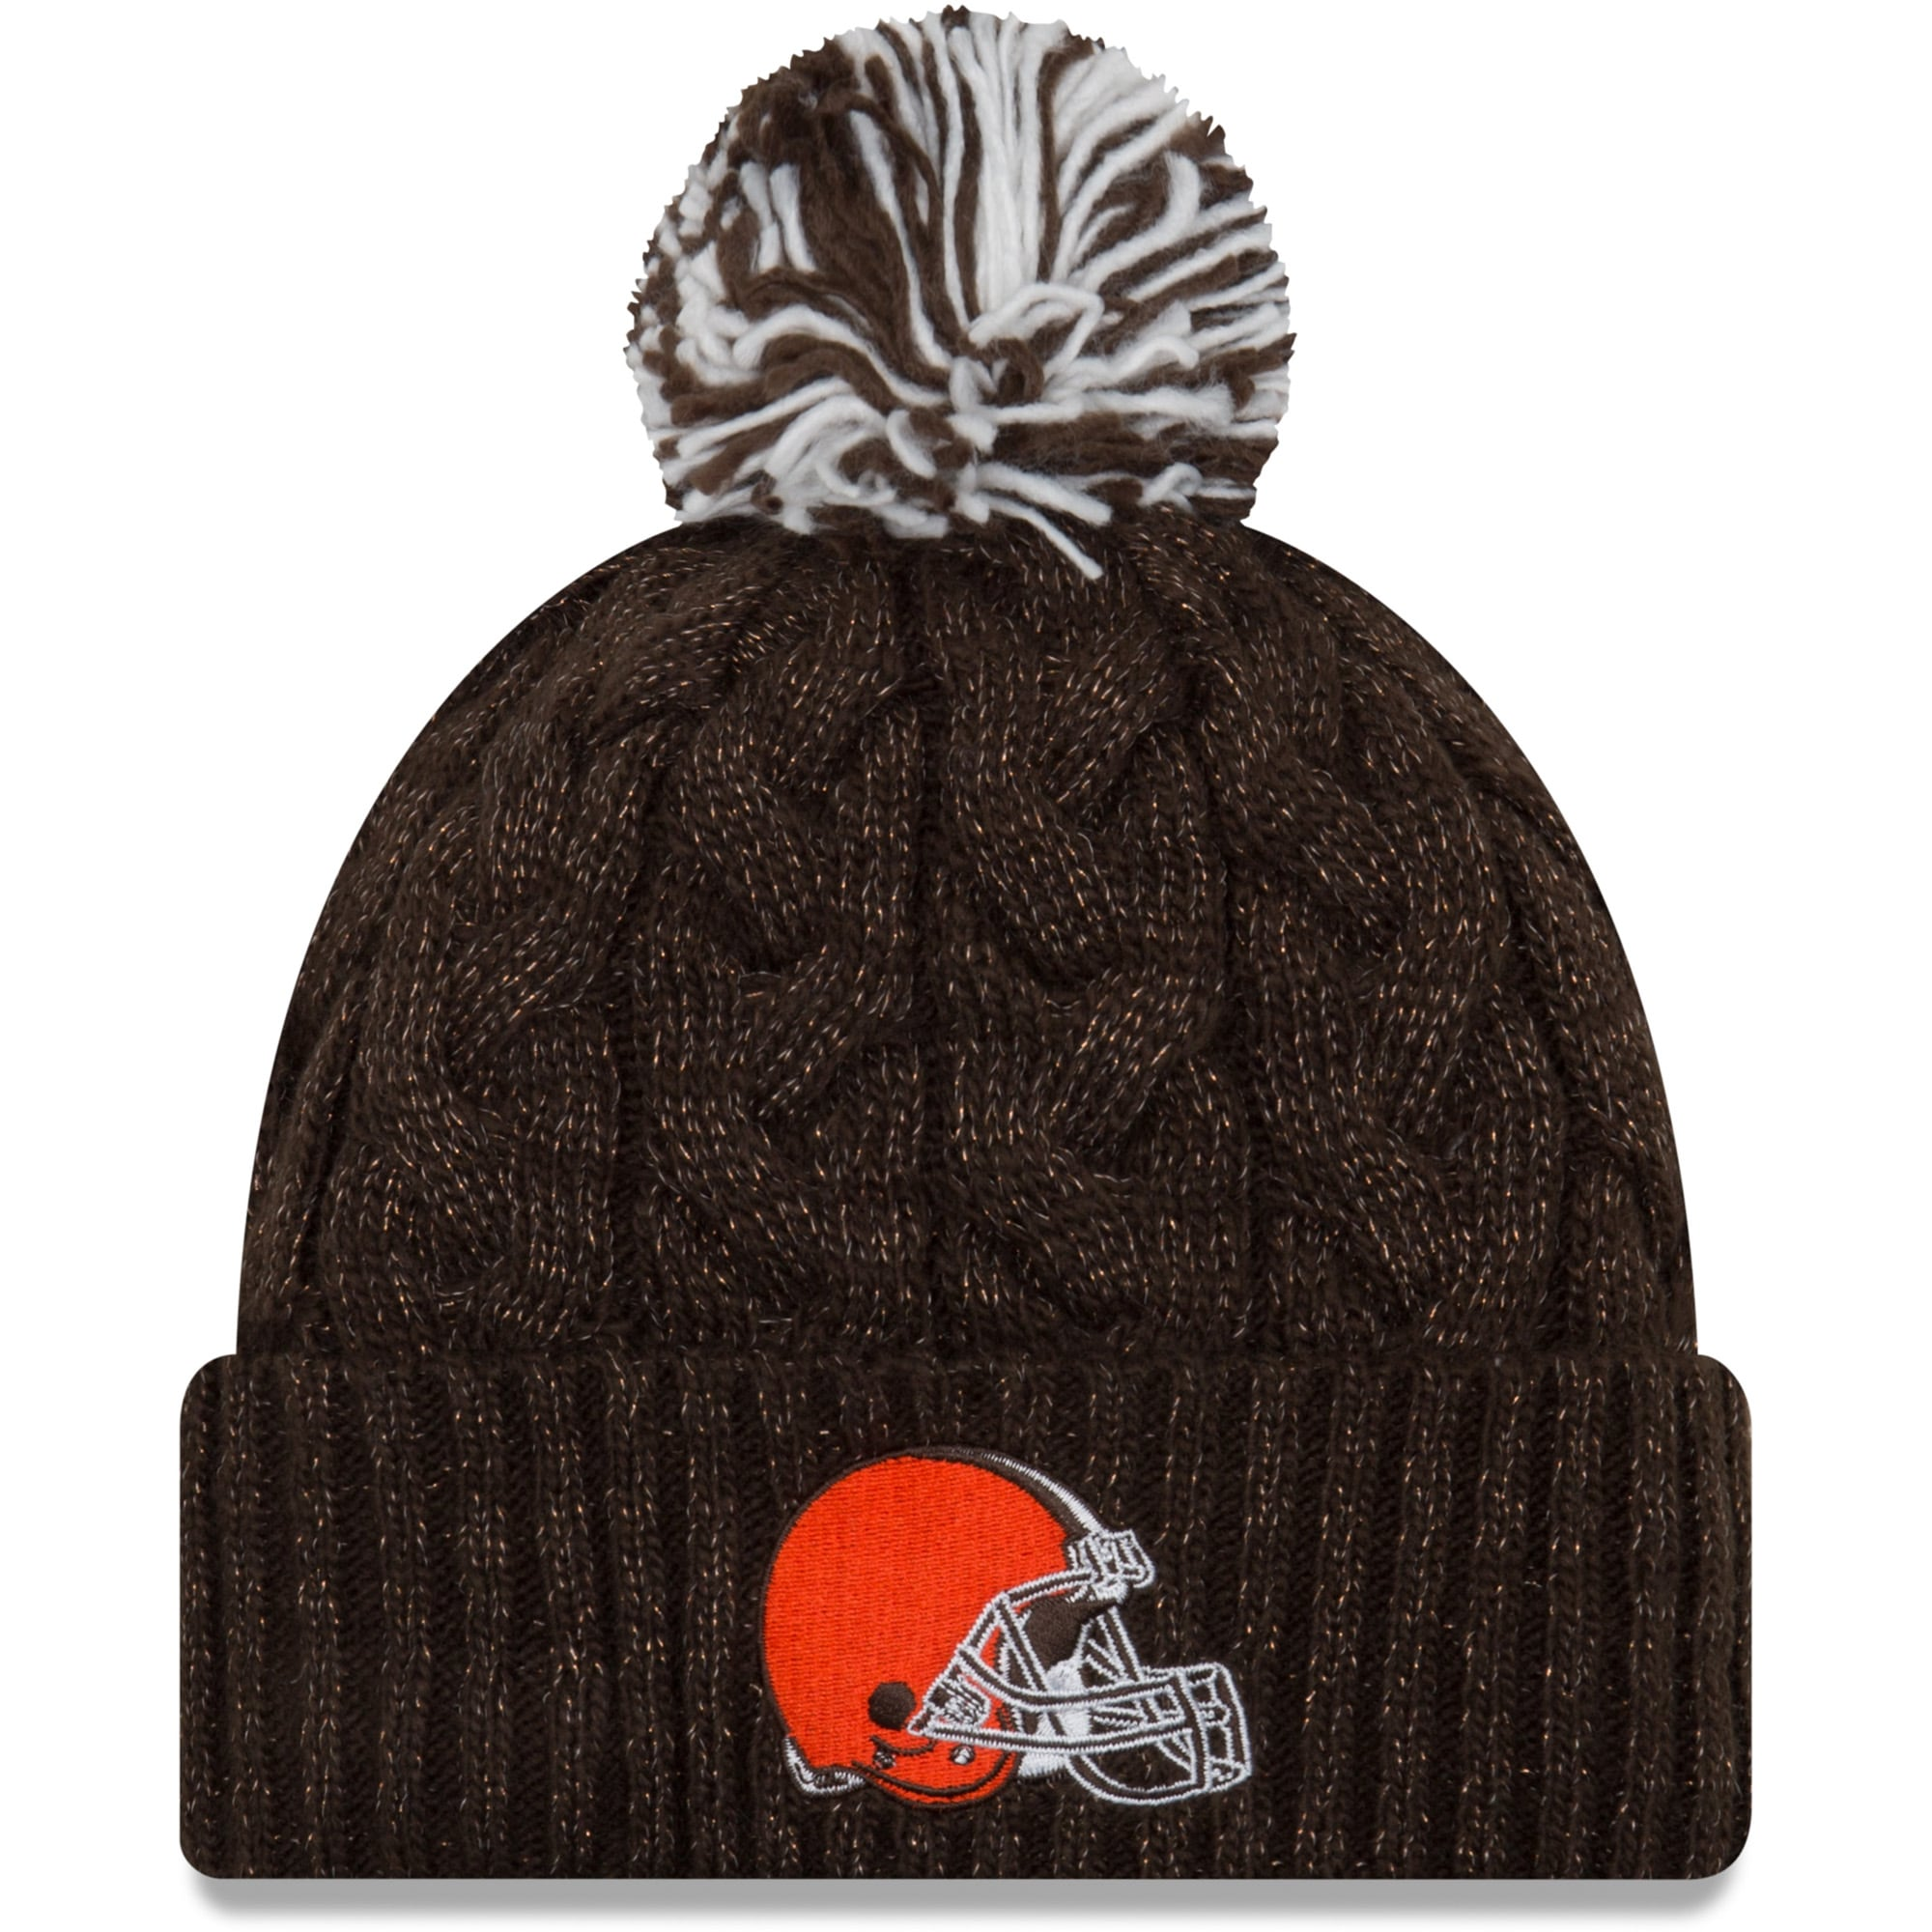 Cleveland Browns New Era Women's Cozy Cable Cuffed Knit Hat - Brown